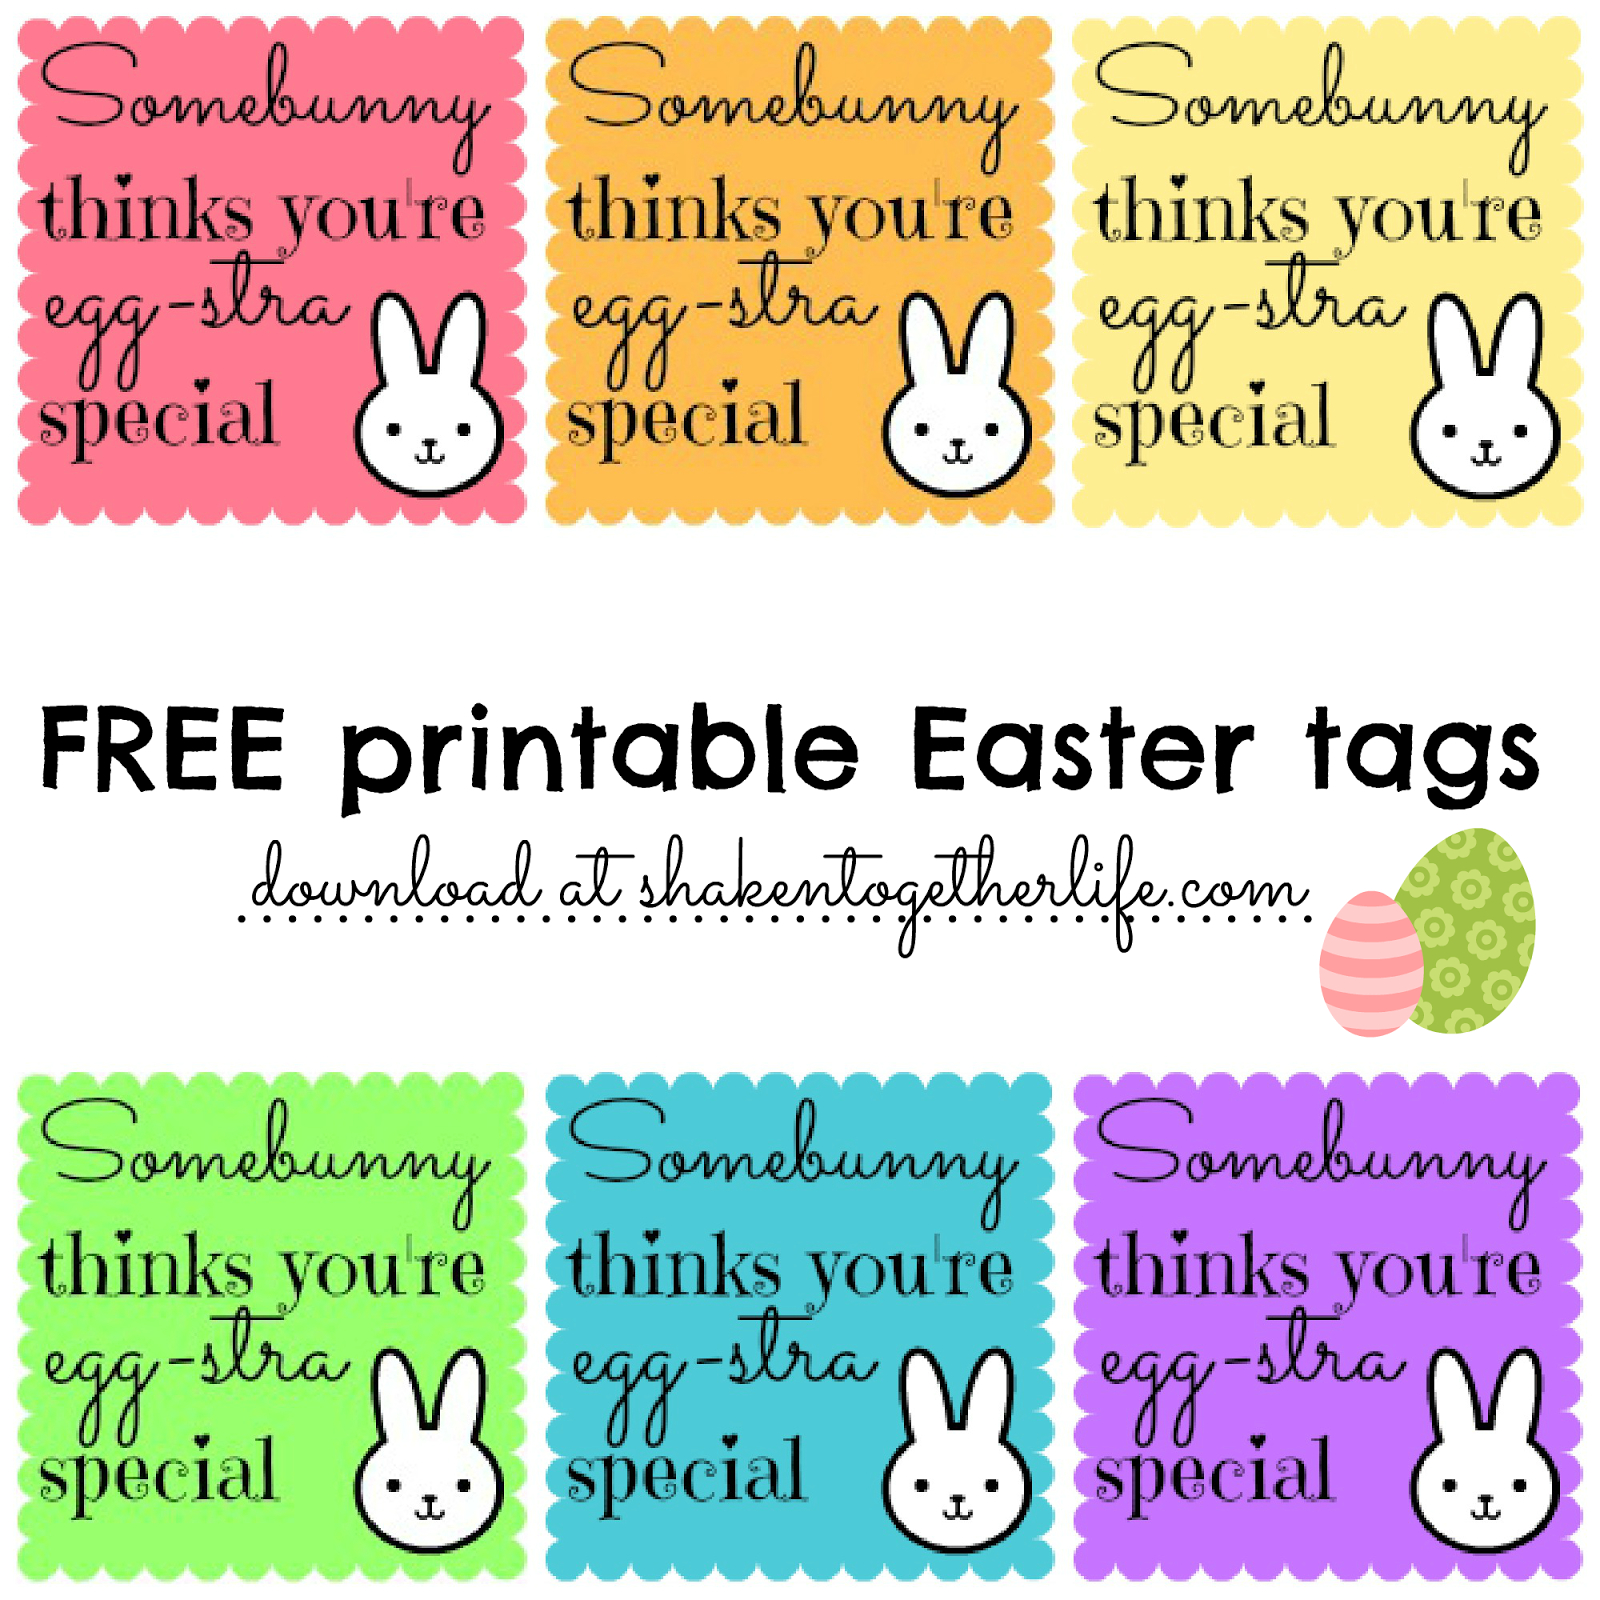 Free Easter Gift Tags Printables – Hd Easter Images - Free Printable Easter Tags